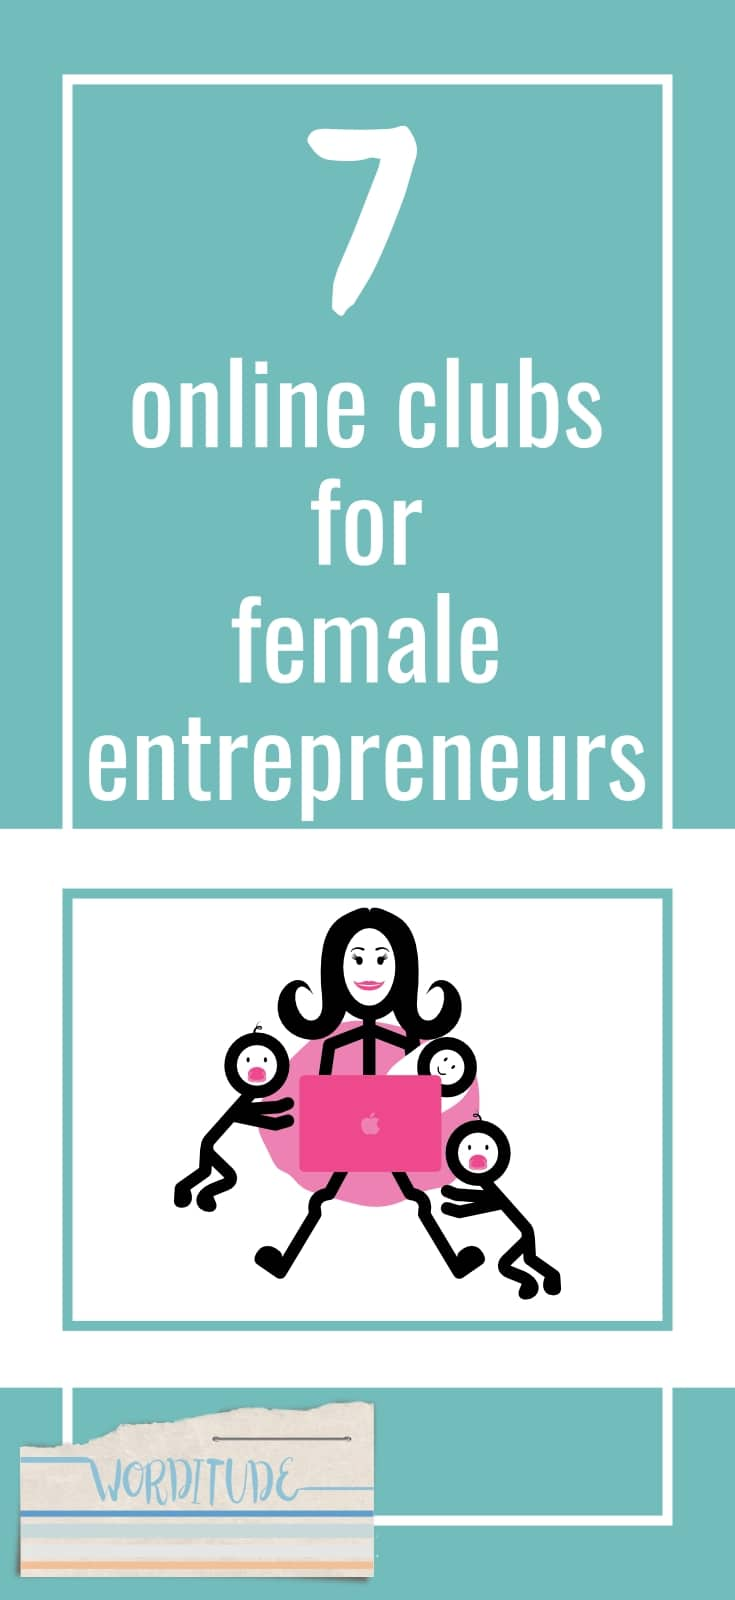 online clubs for female entrepreneurs